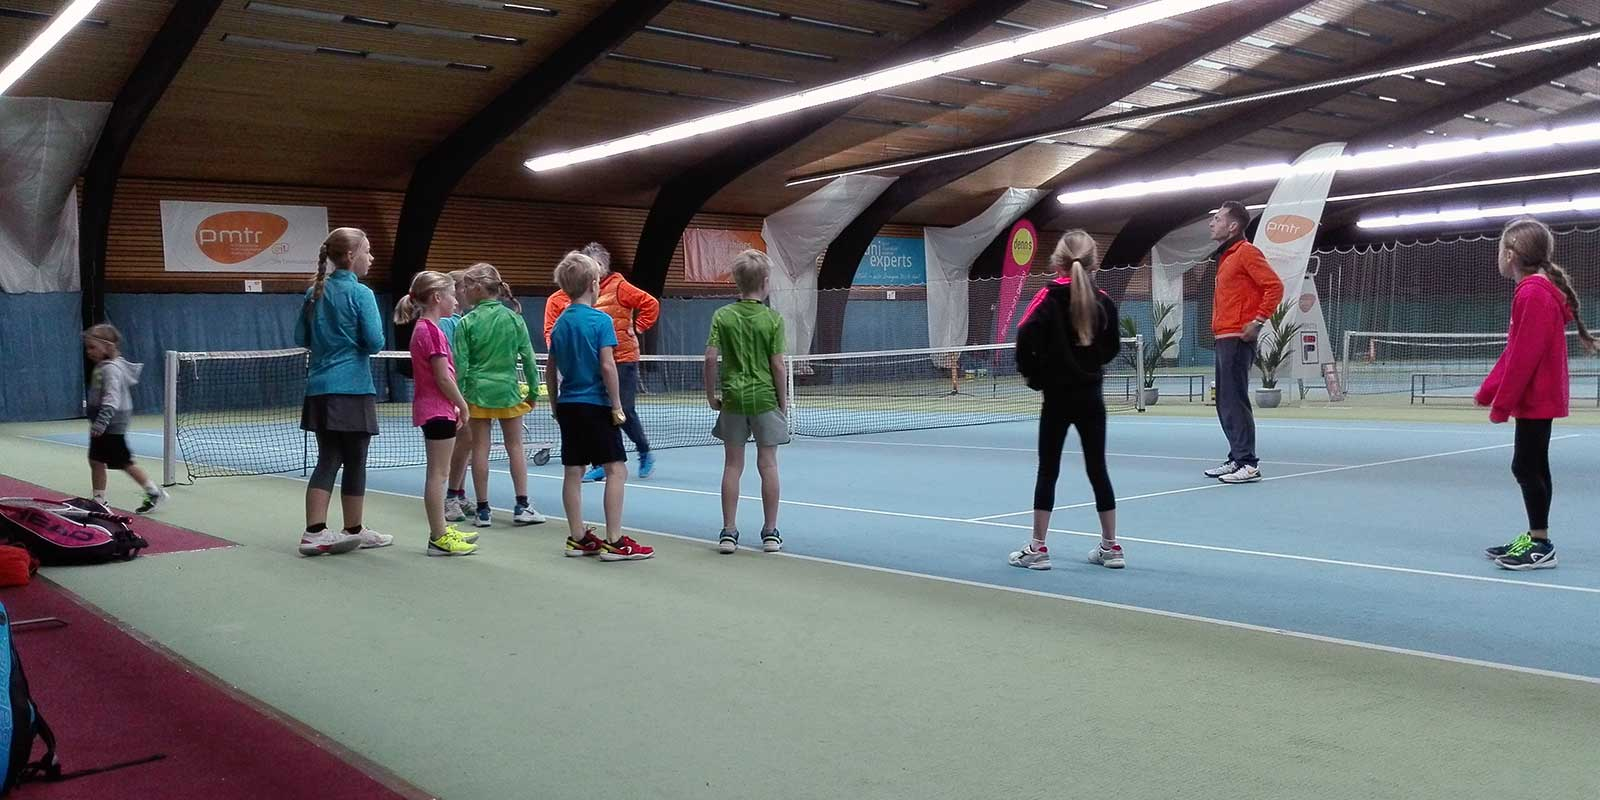 PMTR Tenniscamp Training